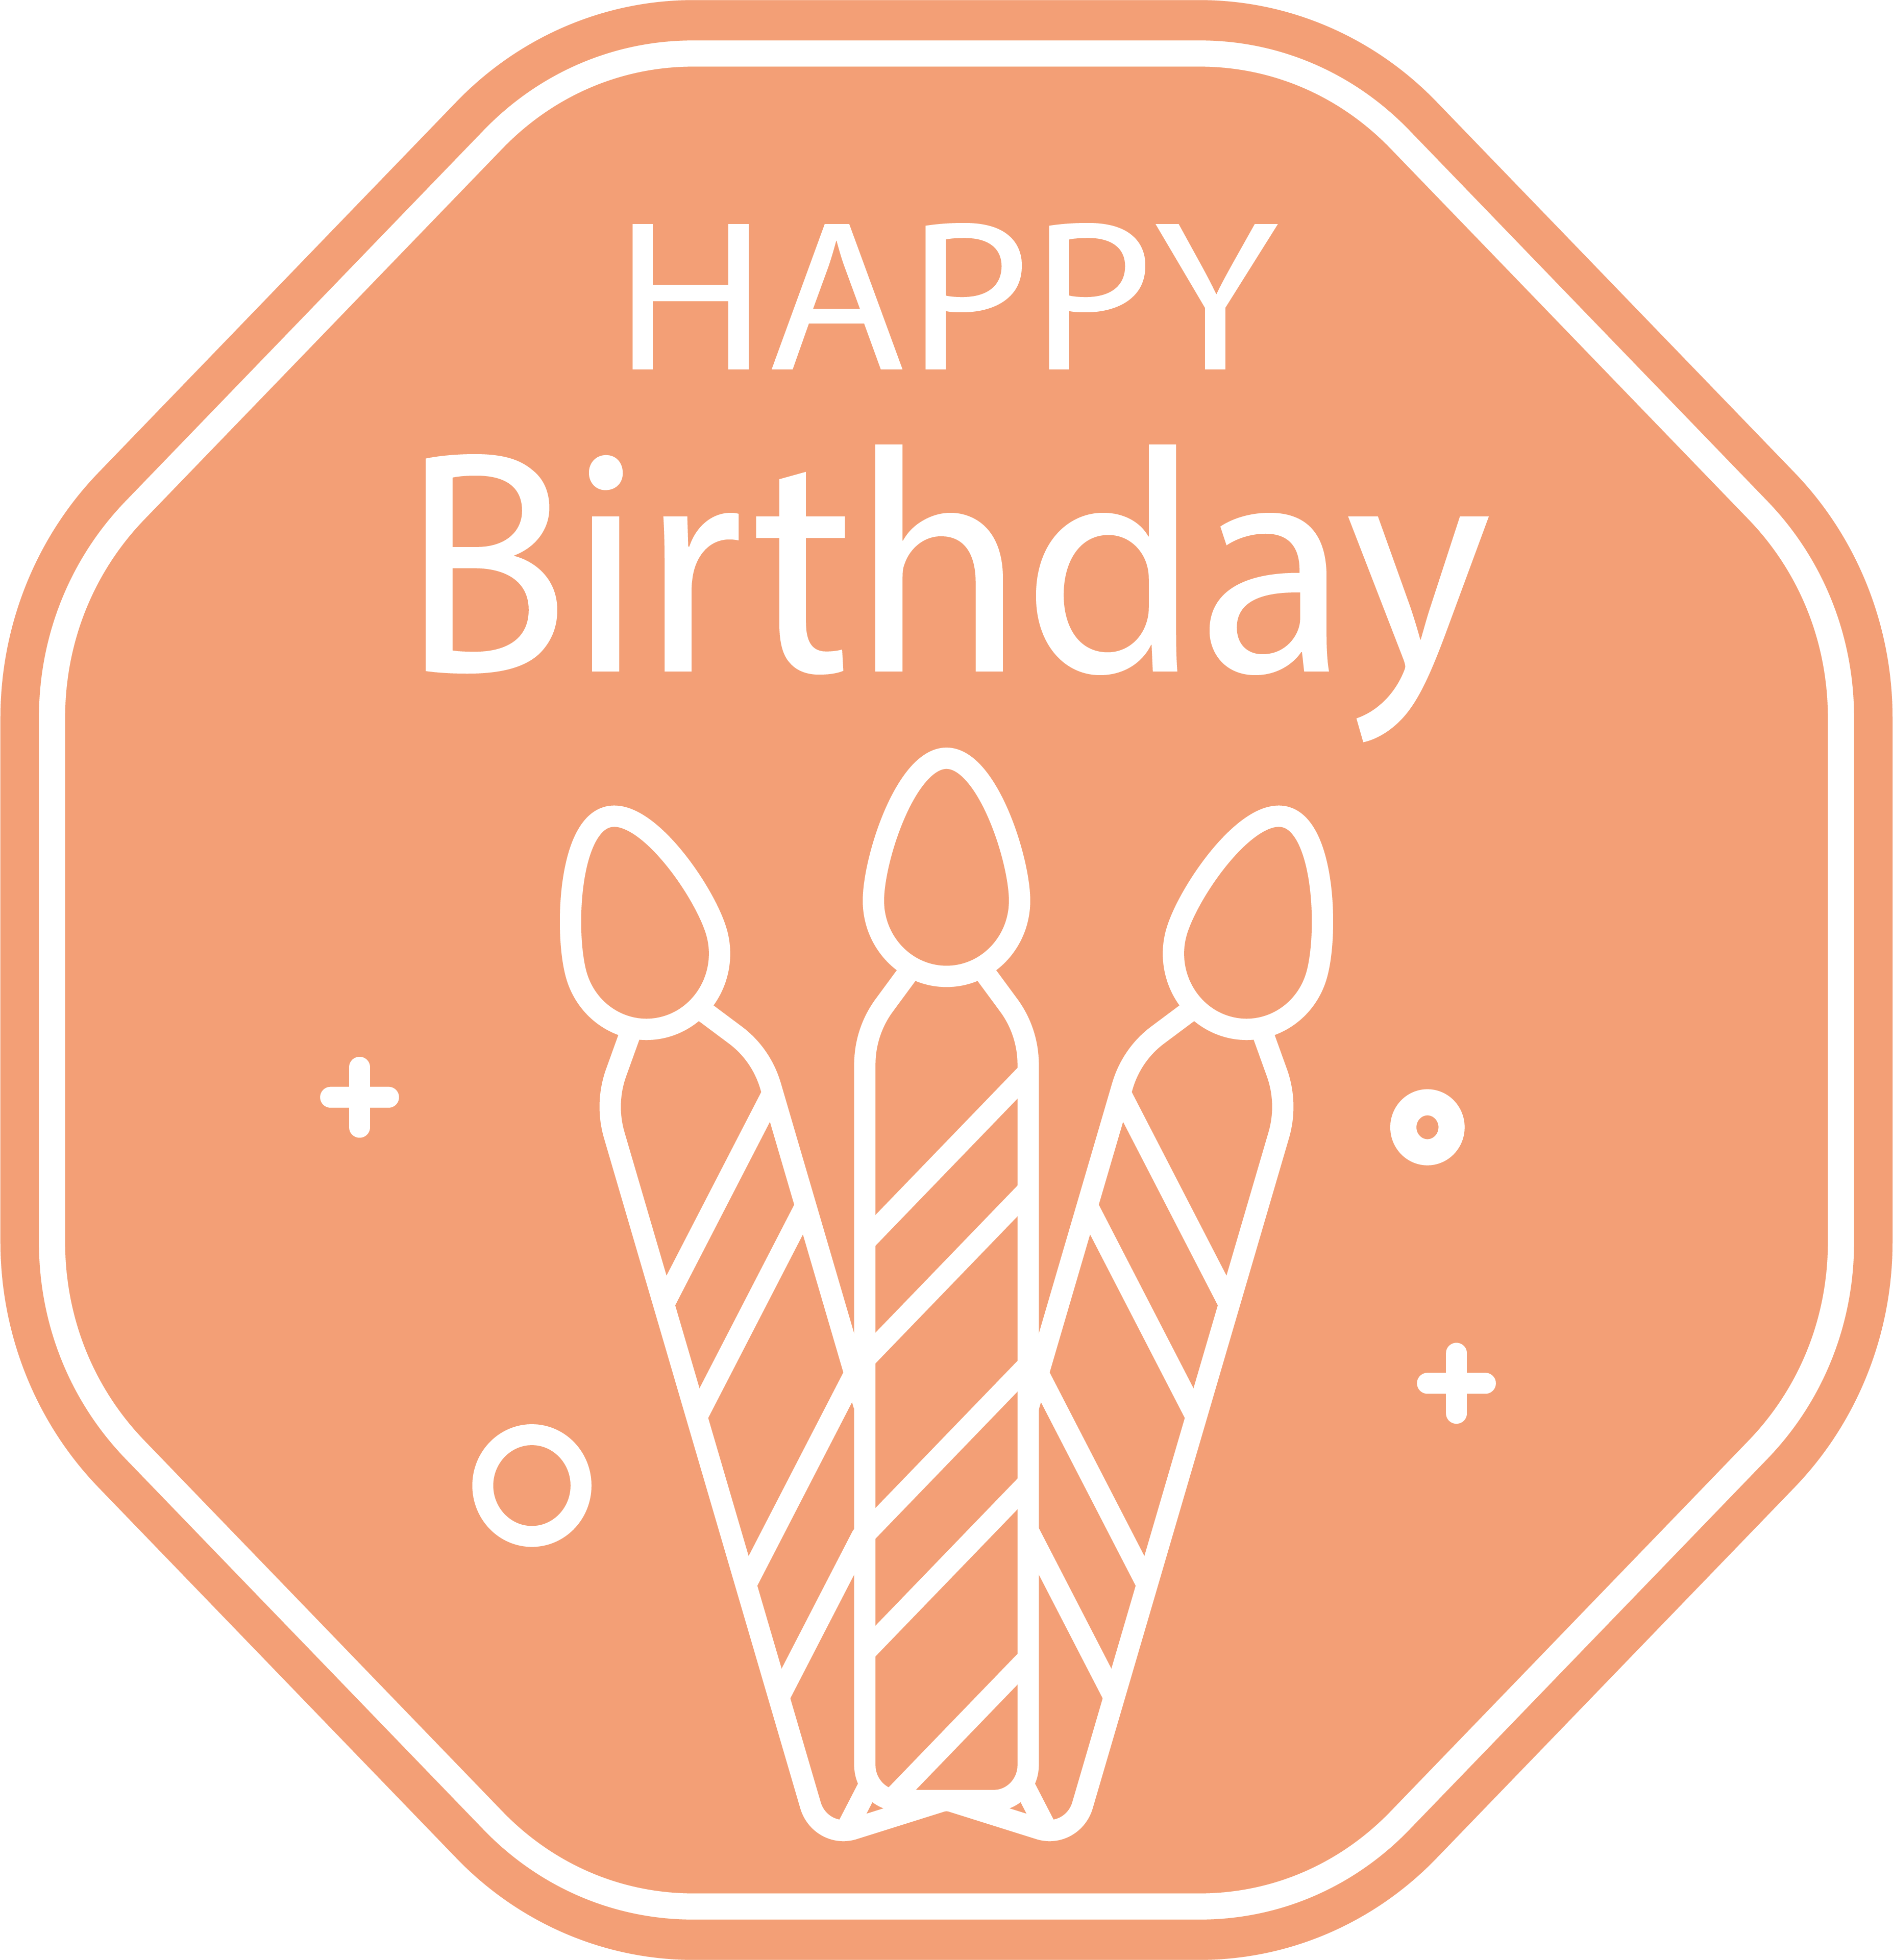 Candle label png. Happy birthday to you